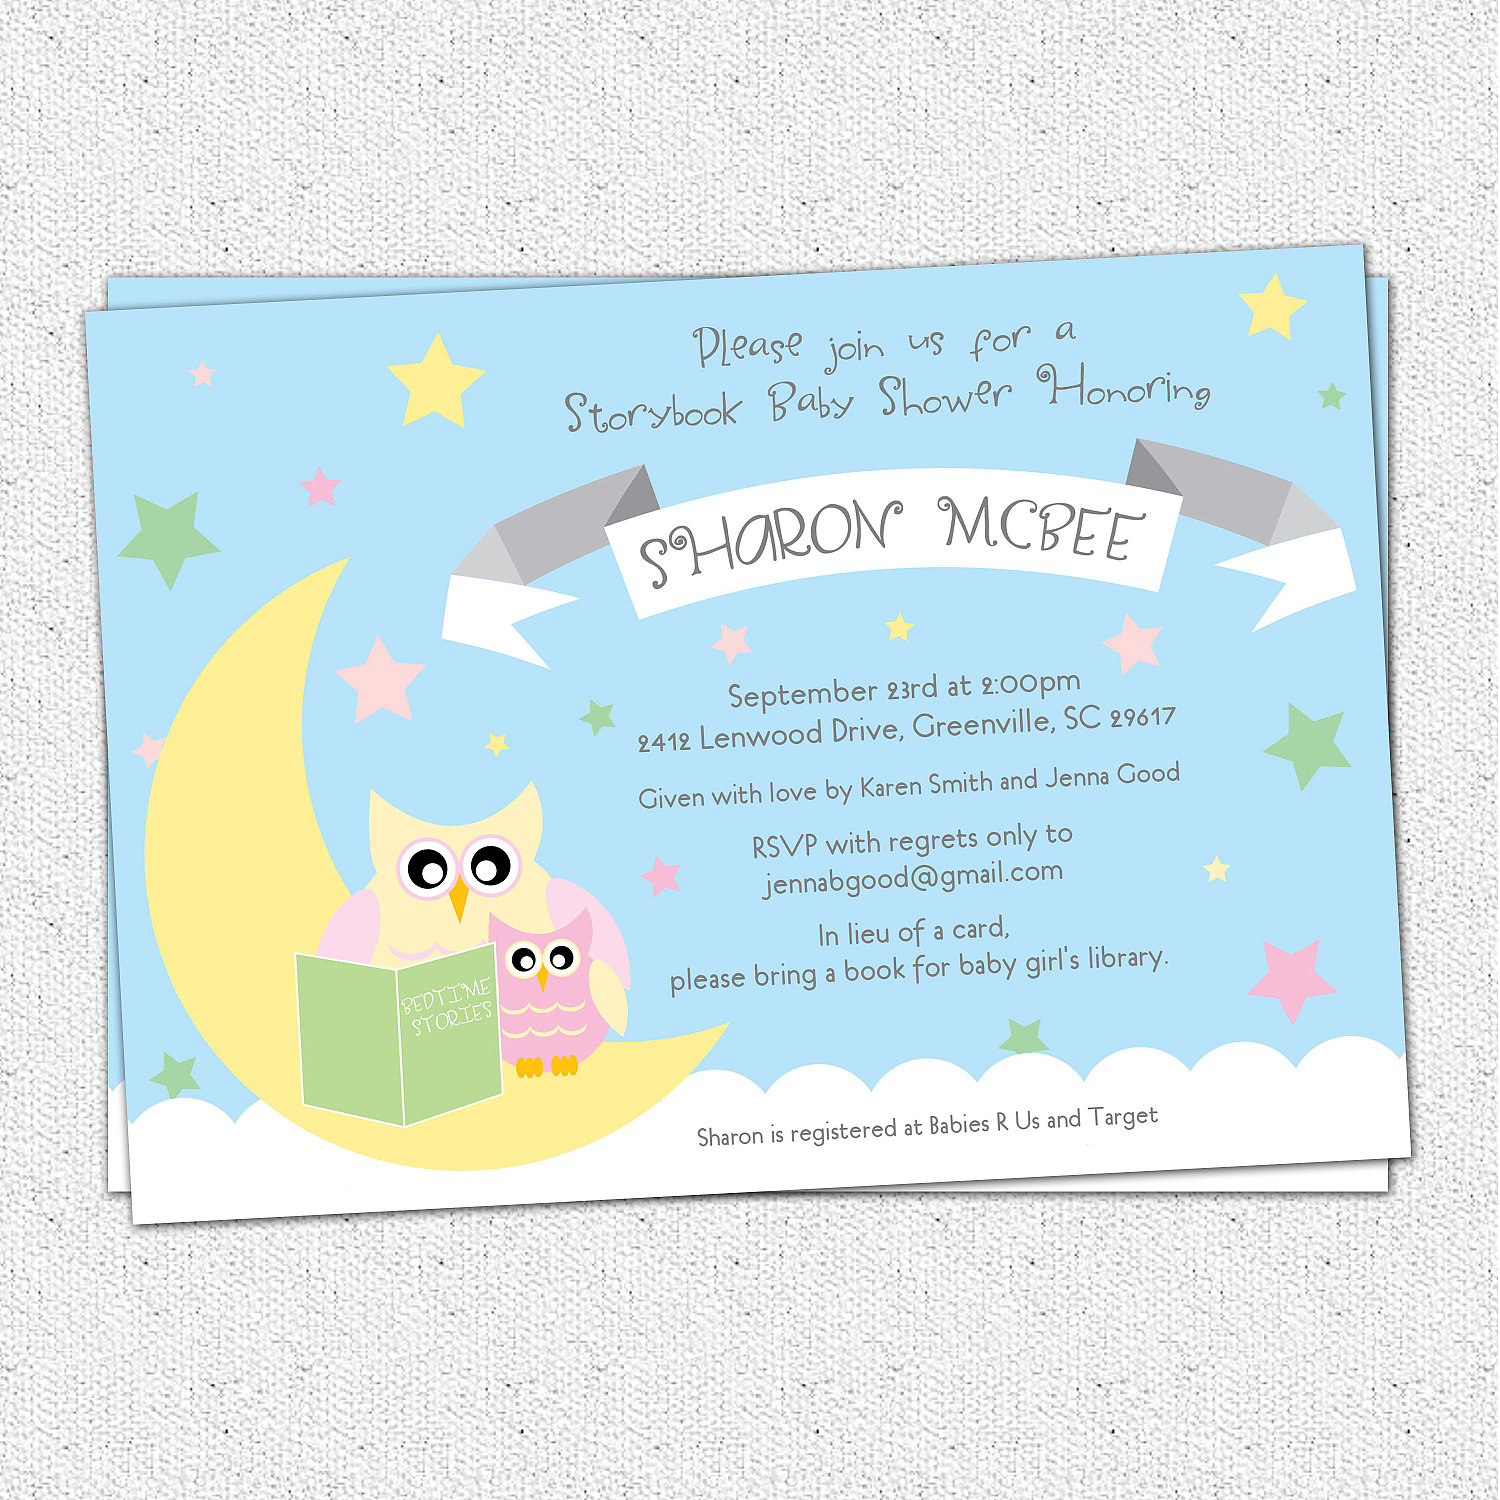 Baby shower invitations story book themed mom and baby owl moon baby shower invitations story book themed mom and baby owl moon and stars filmwisefo Choice Image